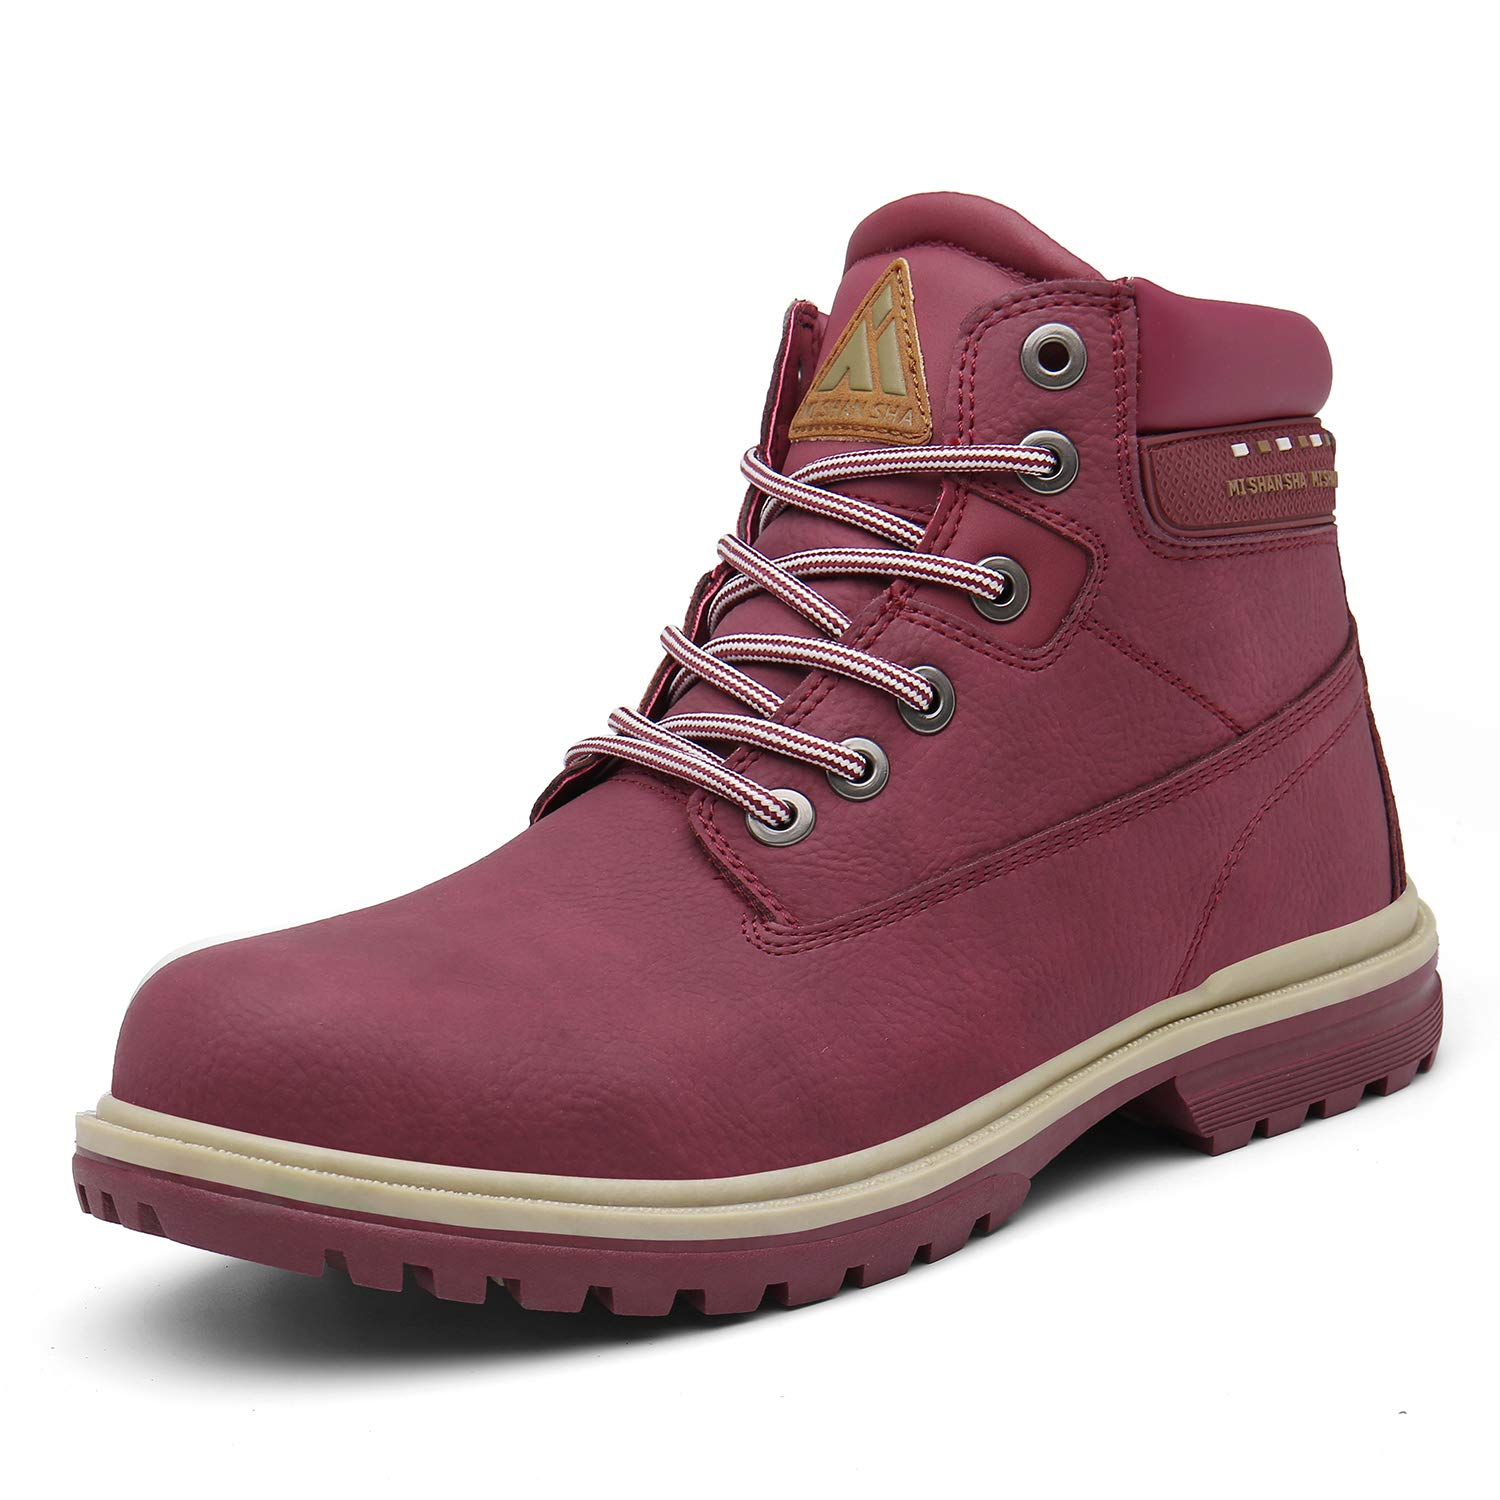 Mishansha Mens Womens Winter Anti-Slip Leather Warm Snow Boots Water Resistant Shoes Fur Lined